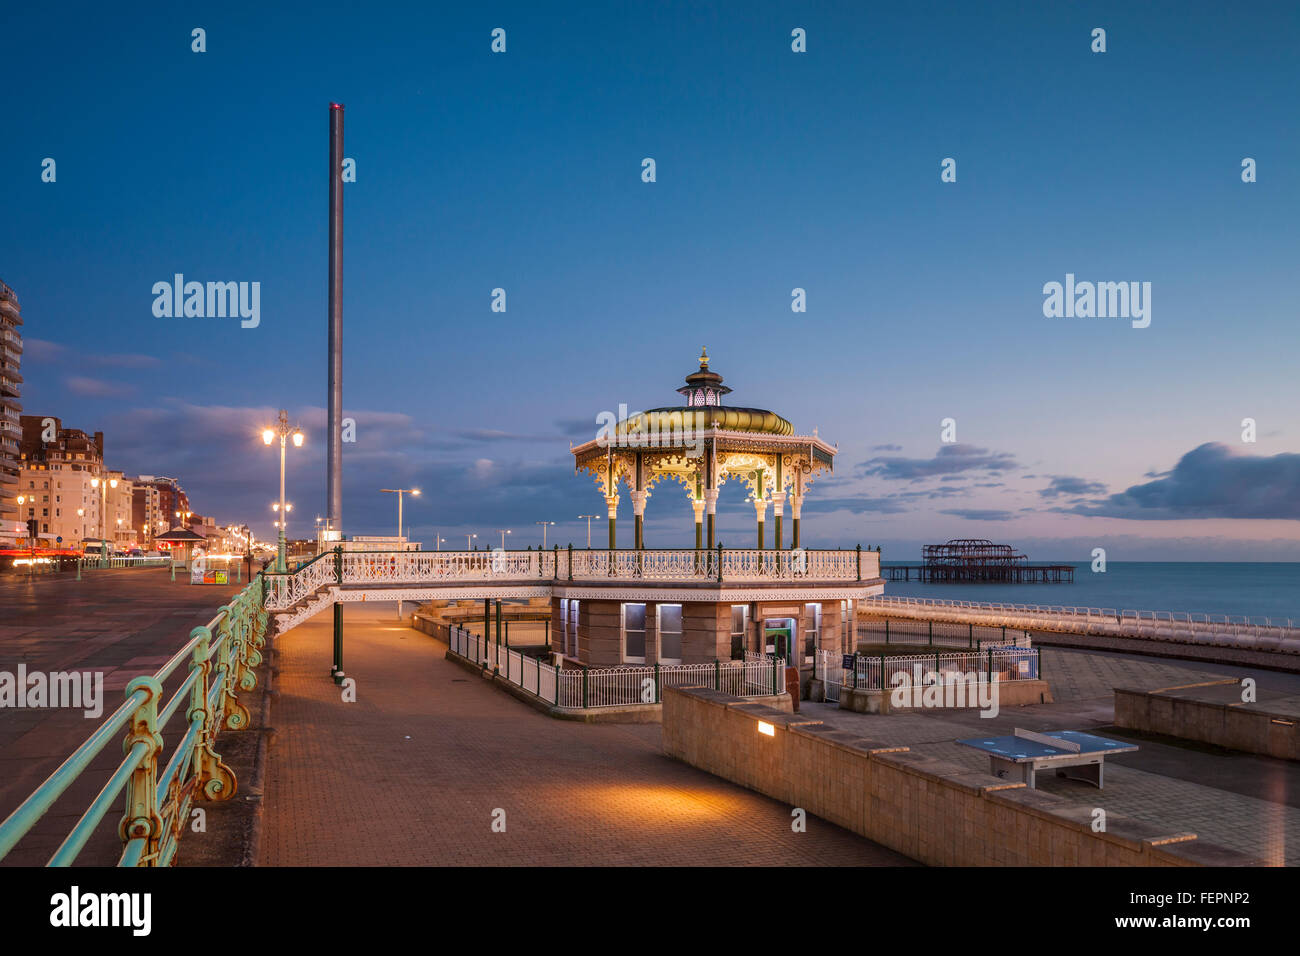 Evening at the Bandstand on Brighton seafront, East Sussex, England. - Stock Image